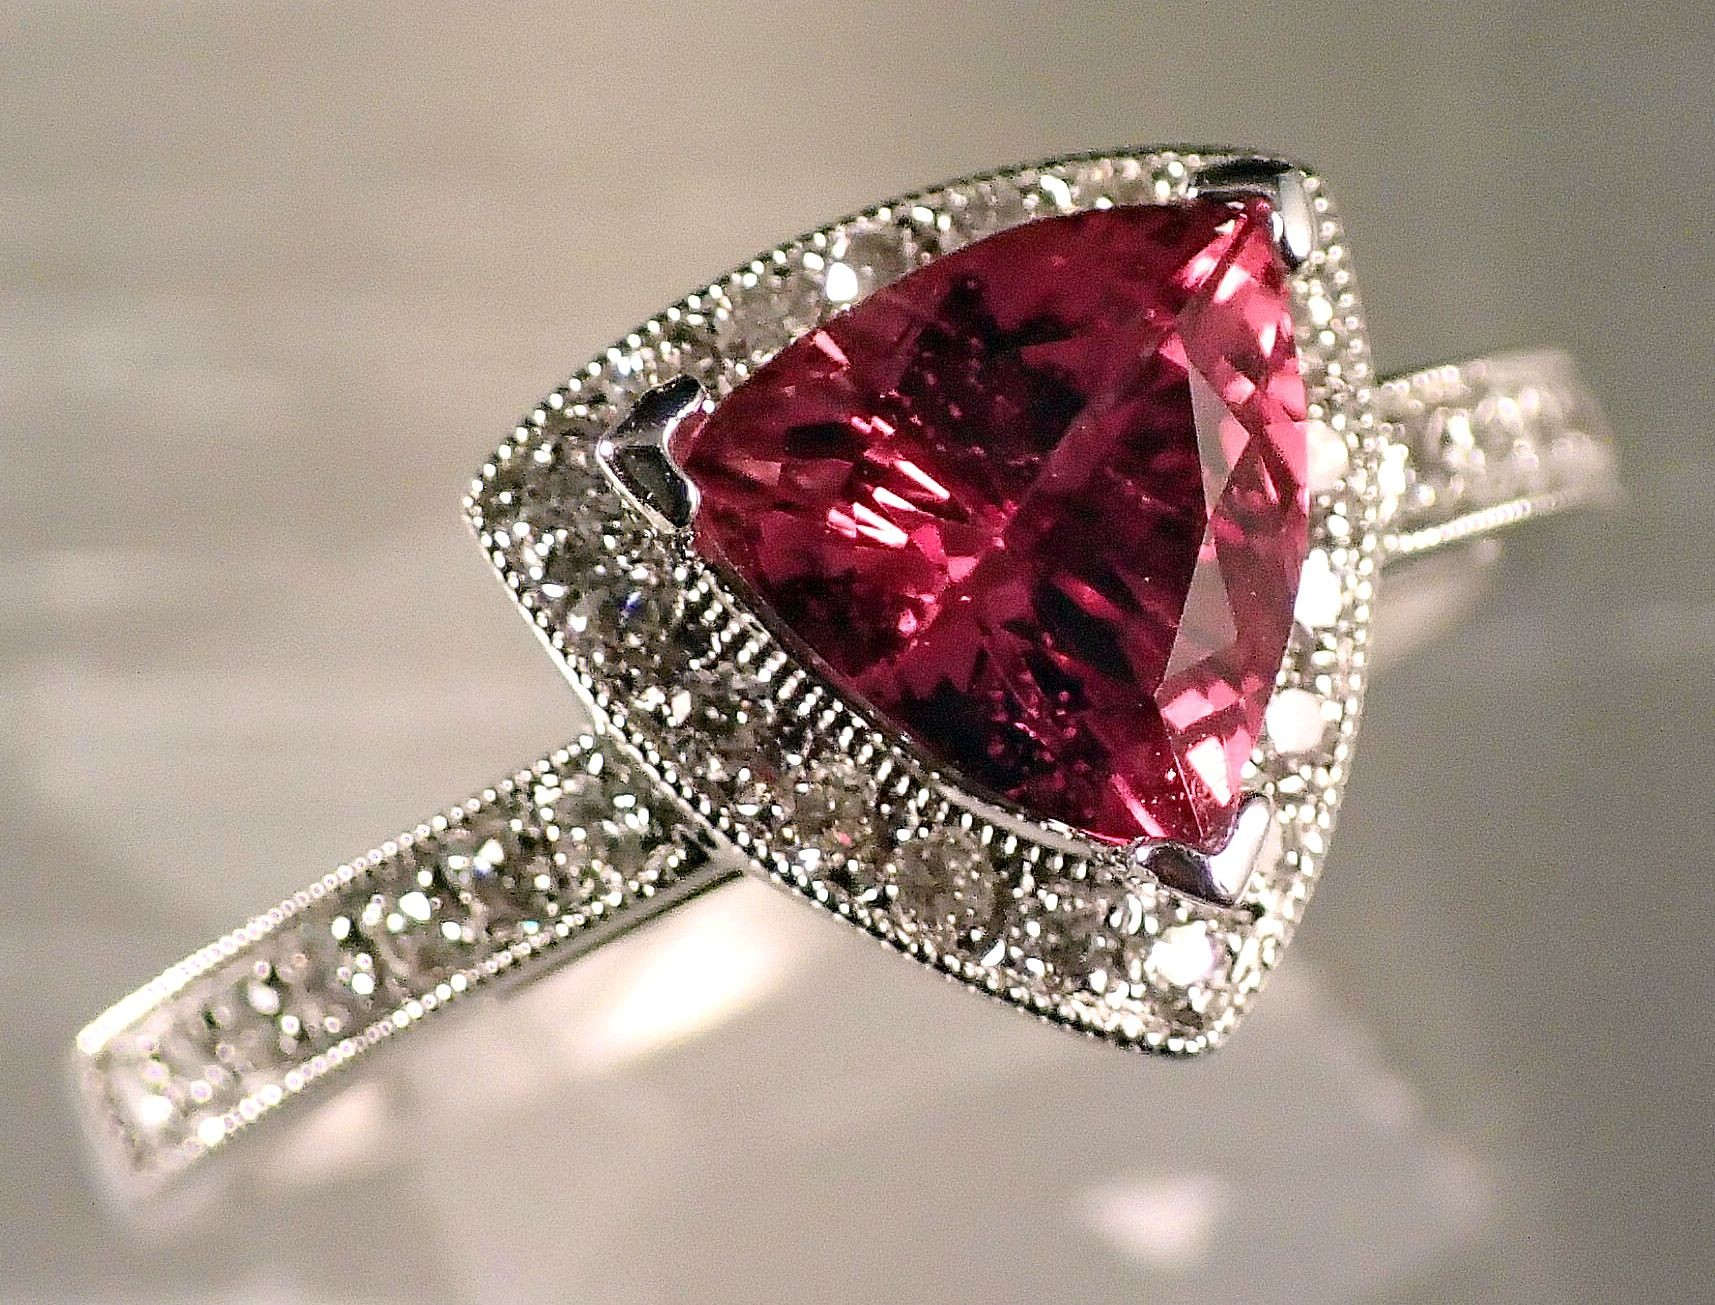 RG0045 - Red Spinel with Diamonds in 18K White Gold Ring